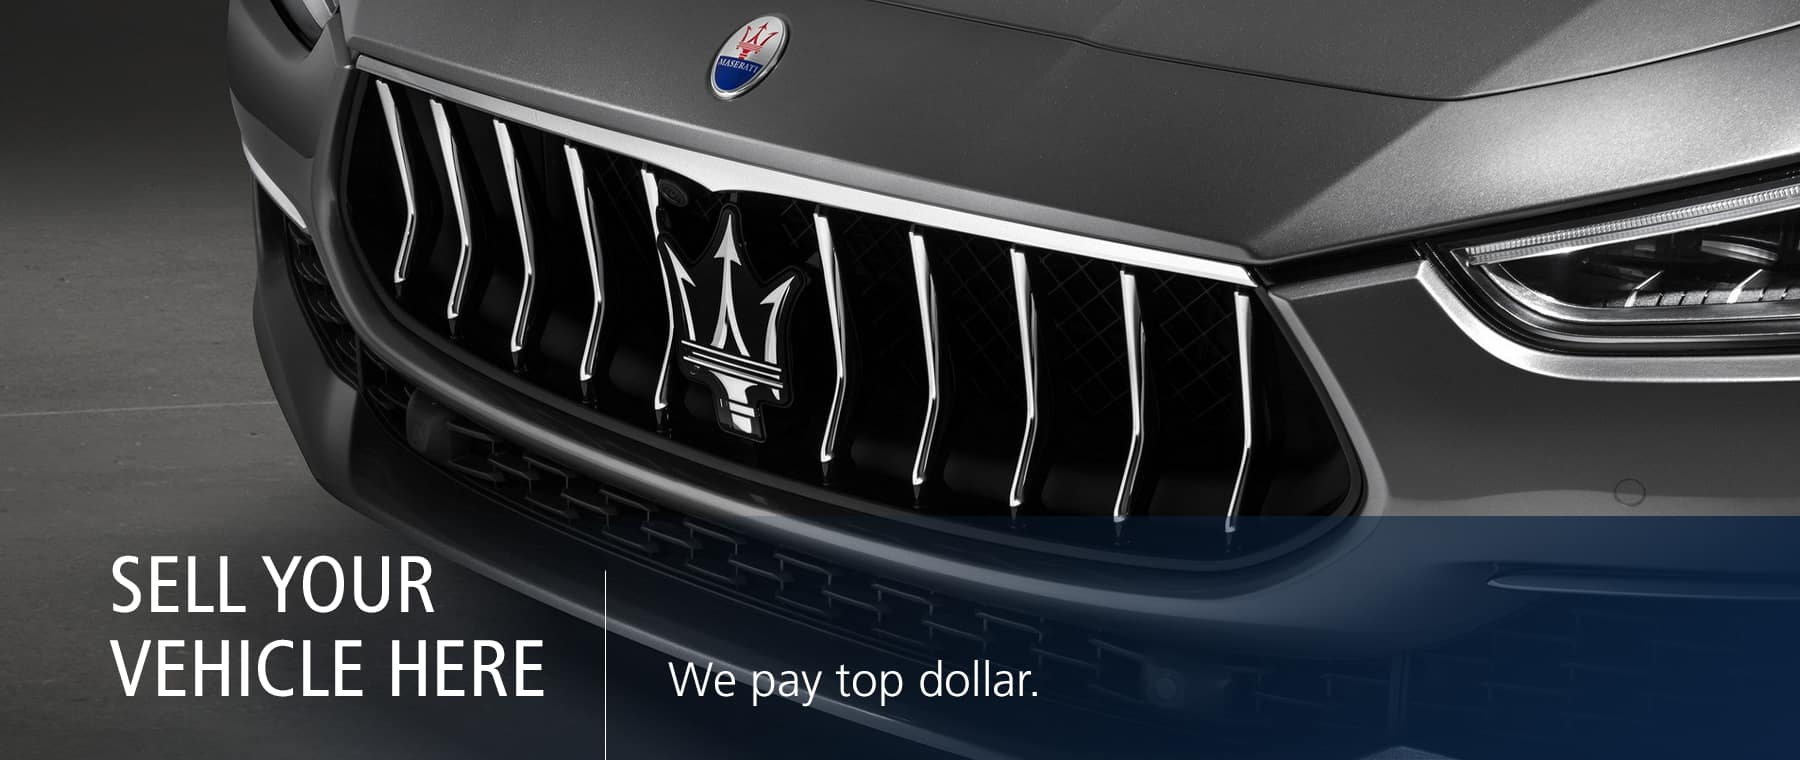 Maserati of Tampa Sell Your Vehicle